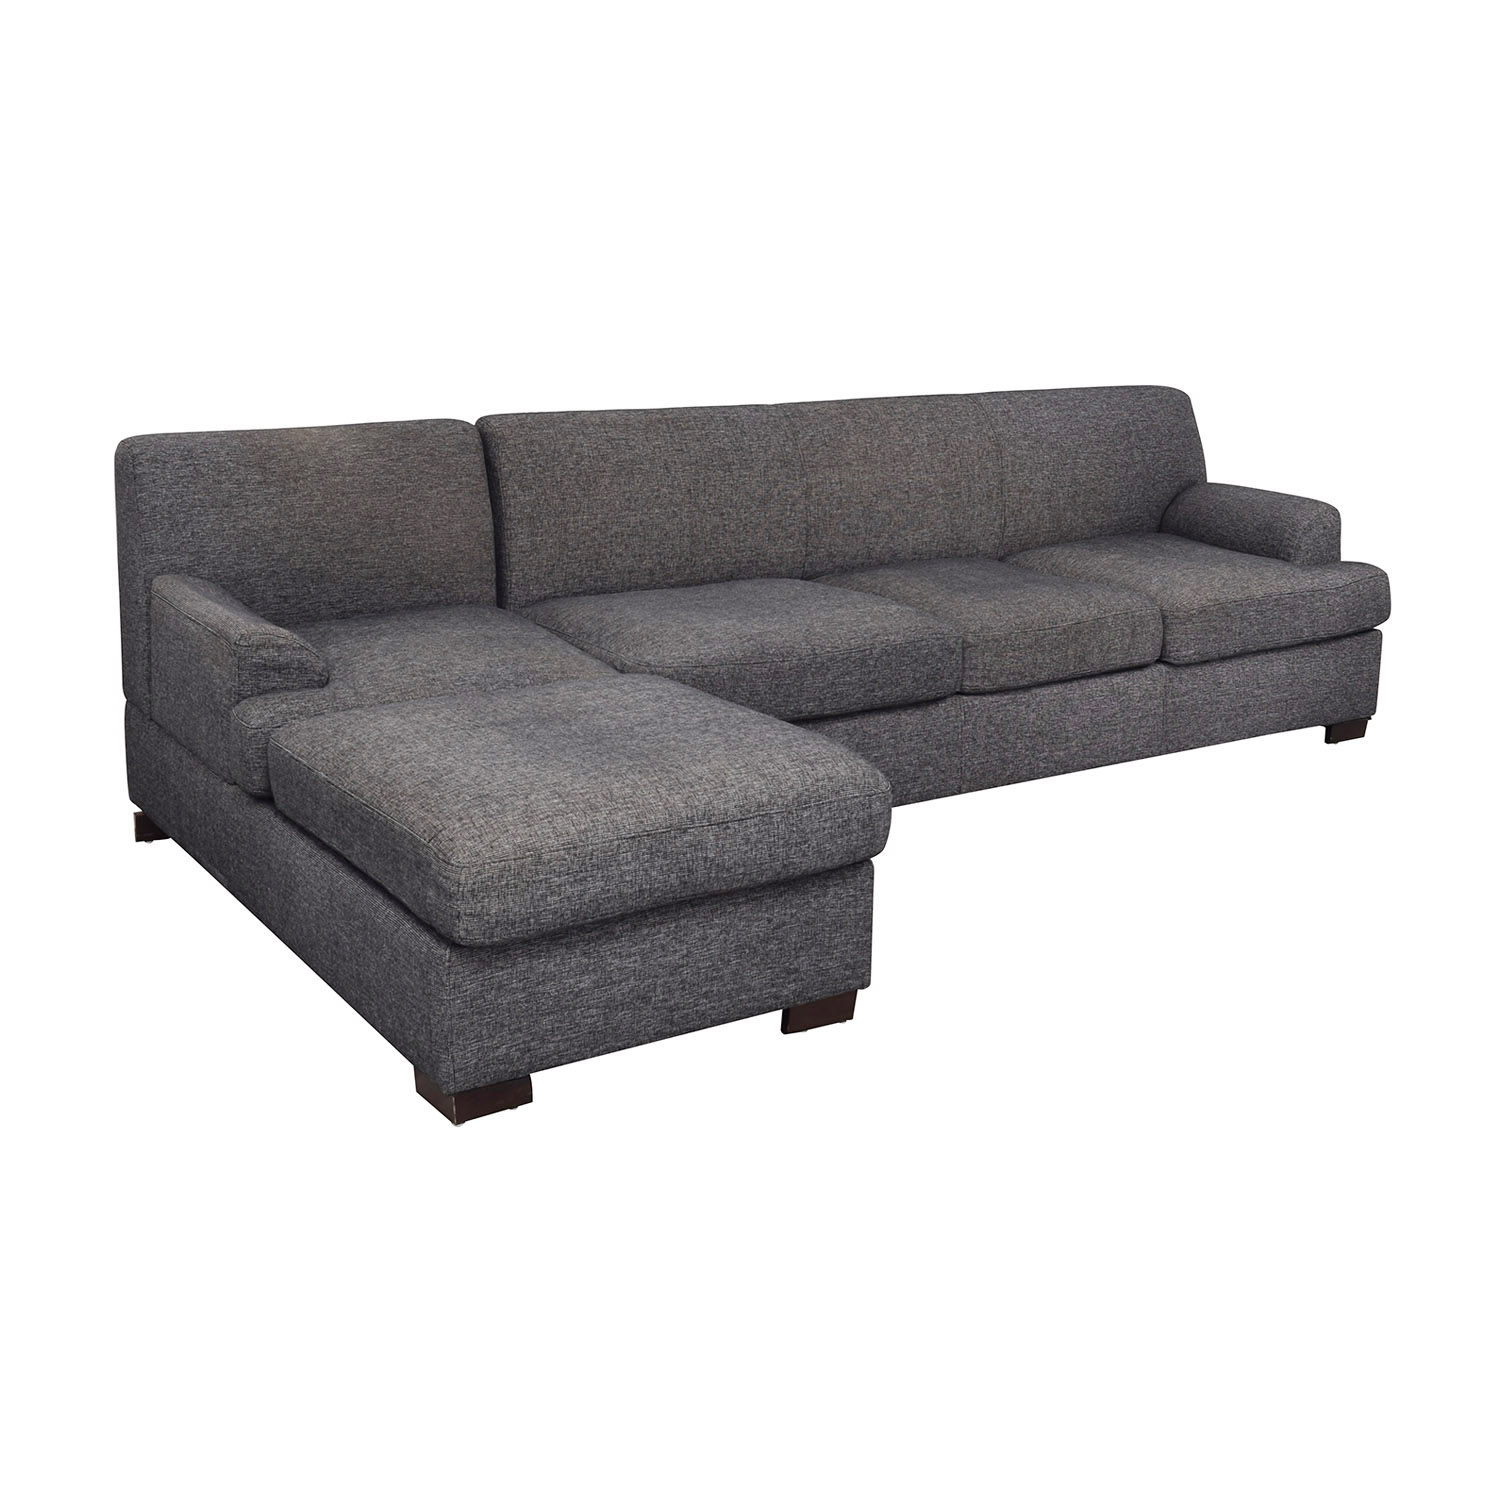 Grey Chaise Sectional Sofa sale